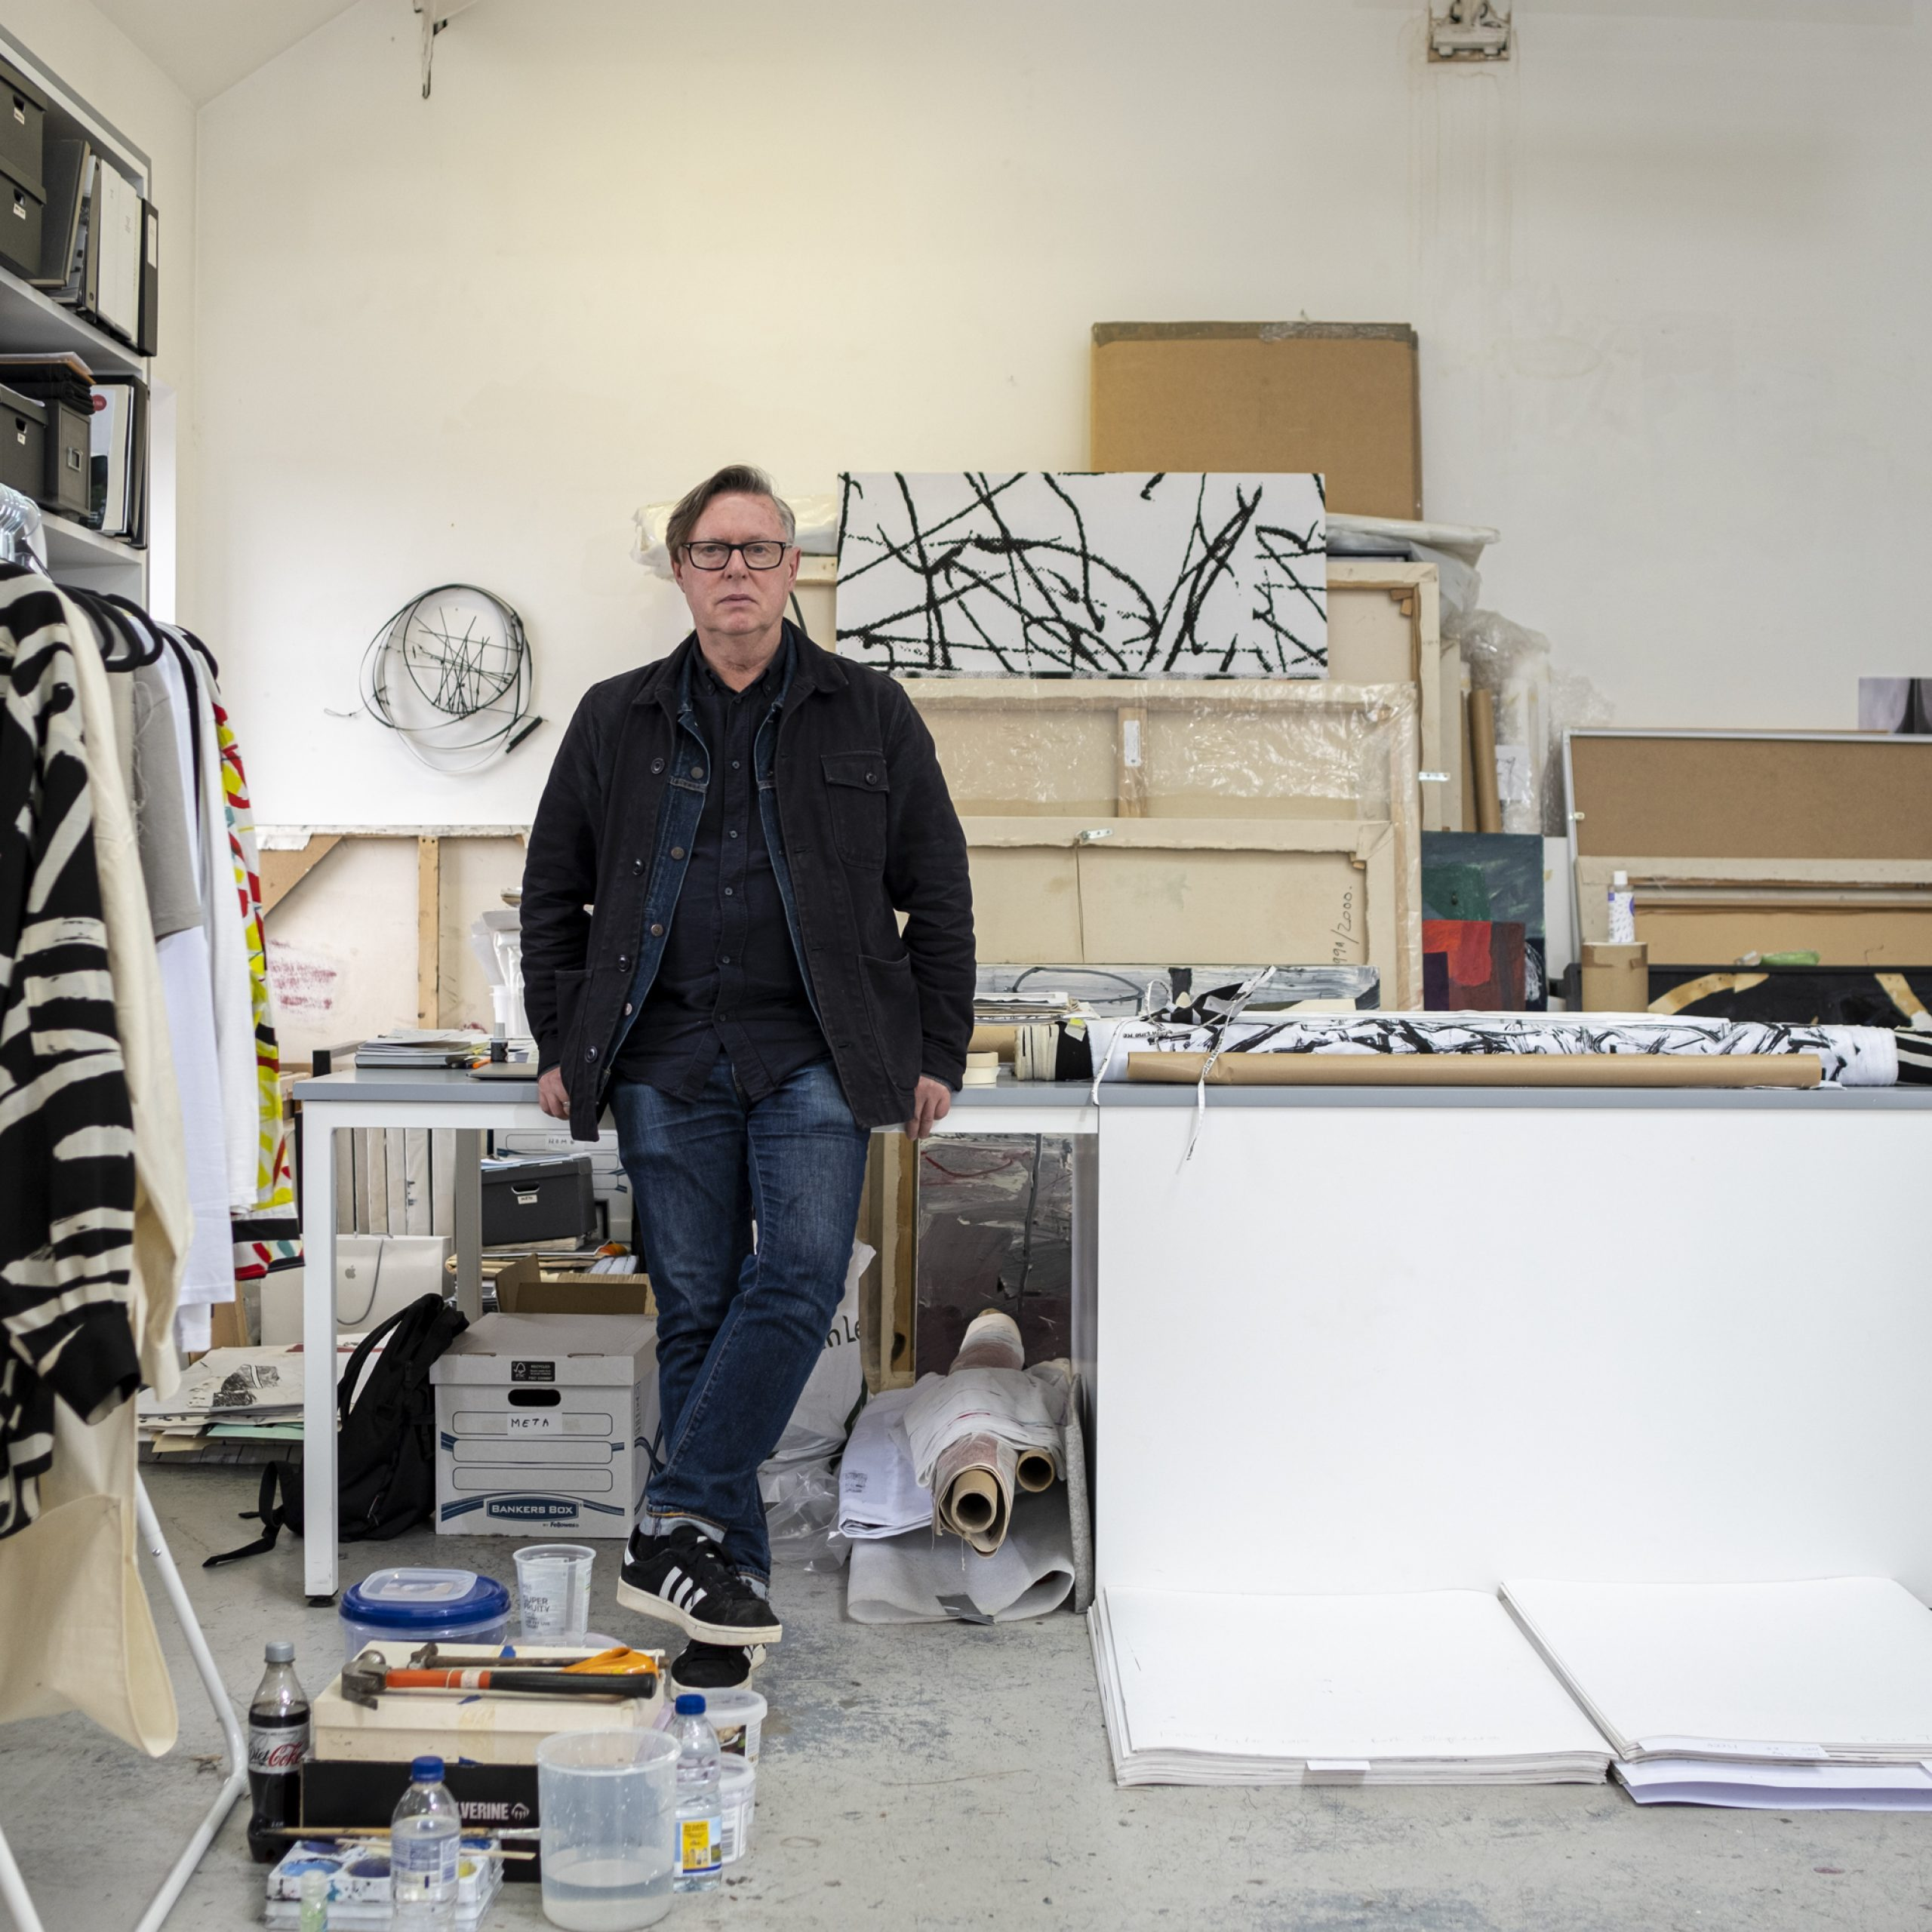 Read our interview with Fraser Taylor, an artist living in Partick